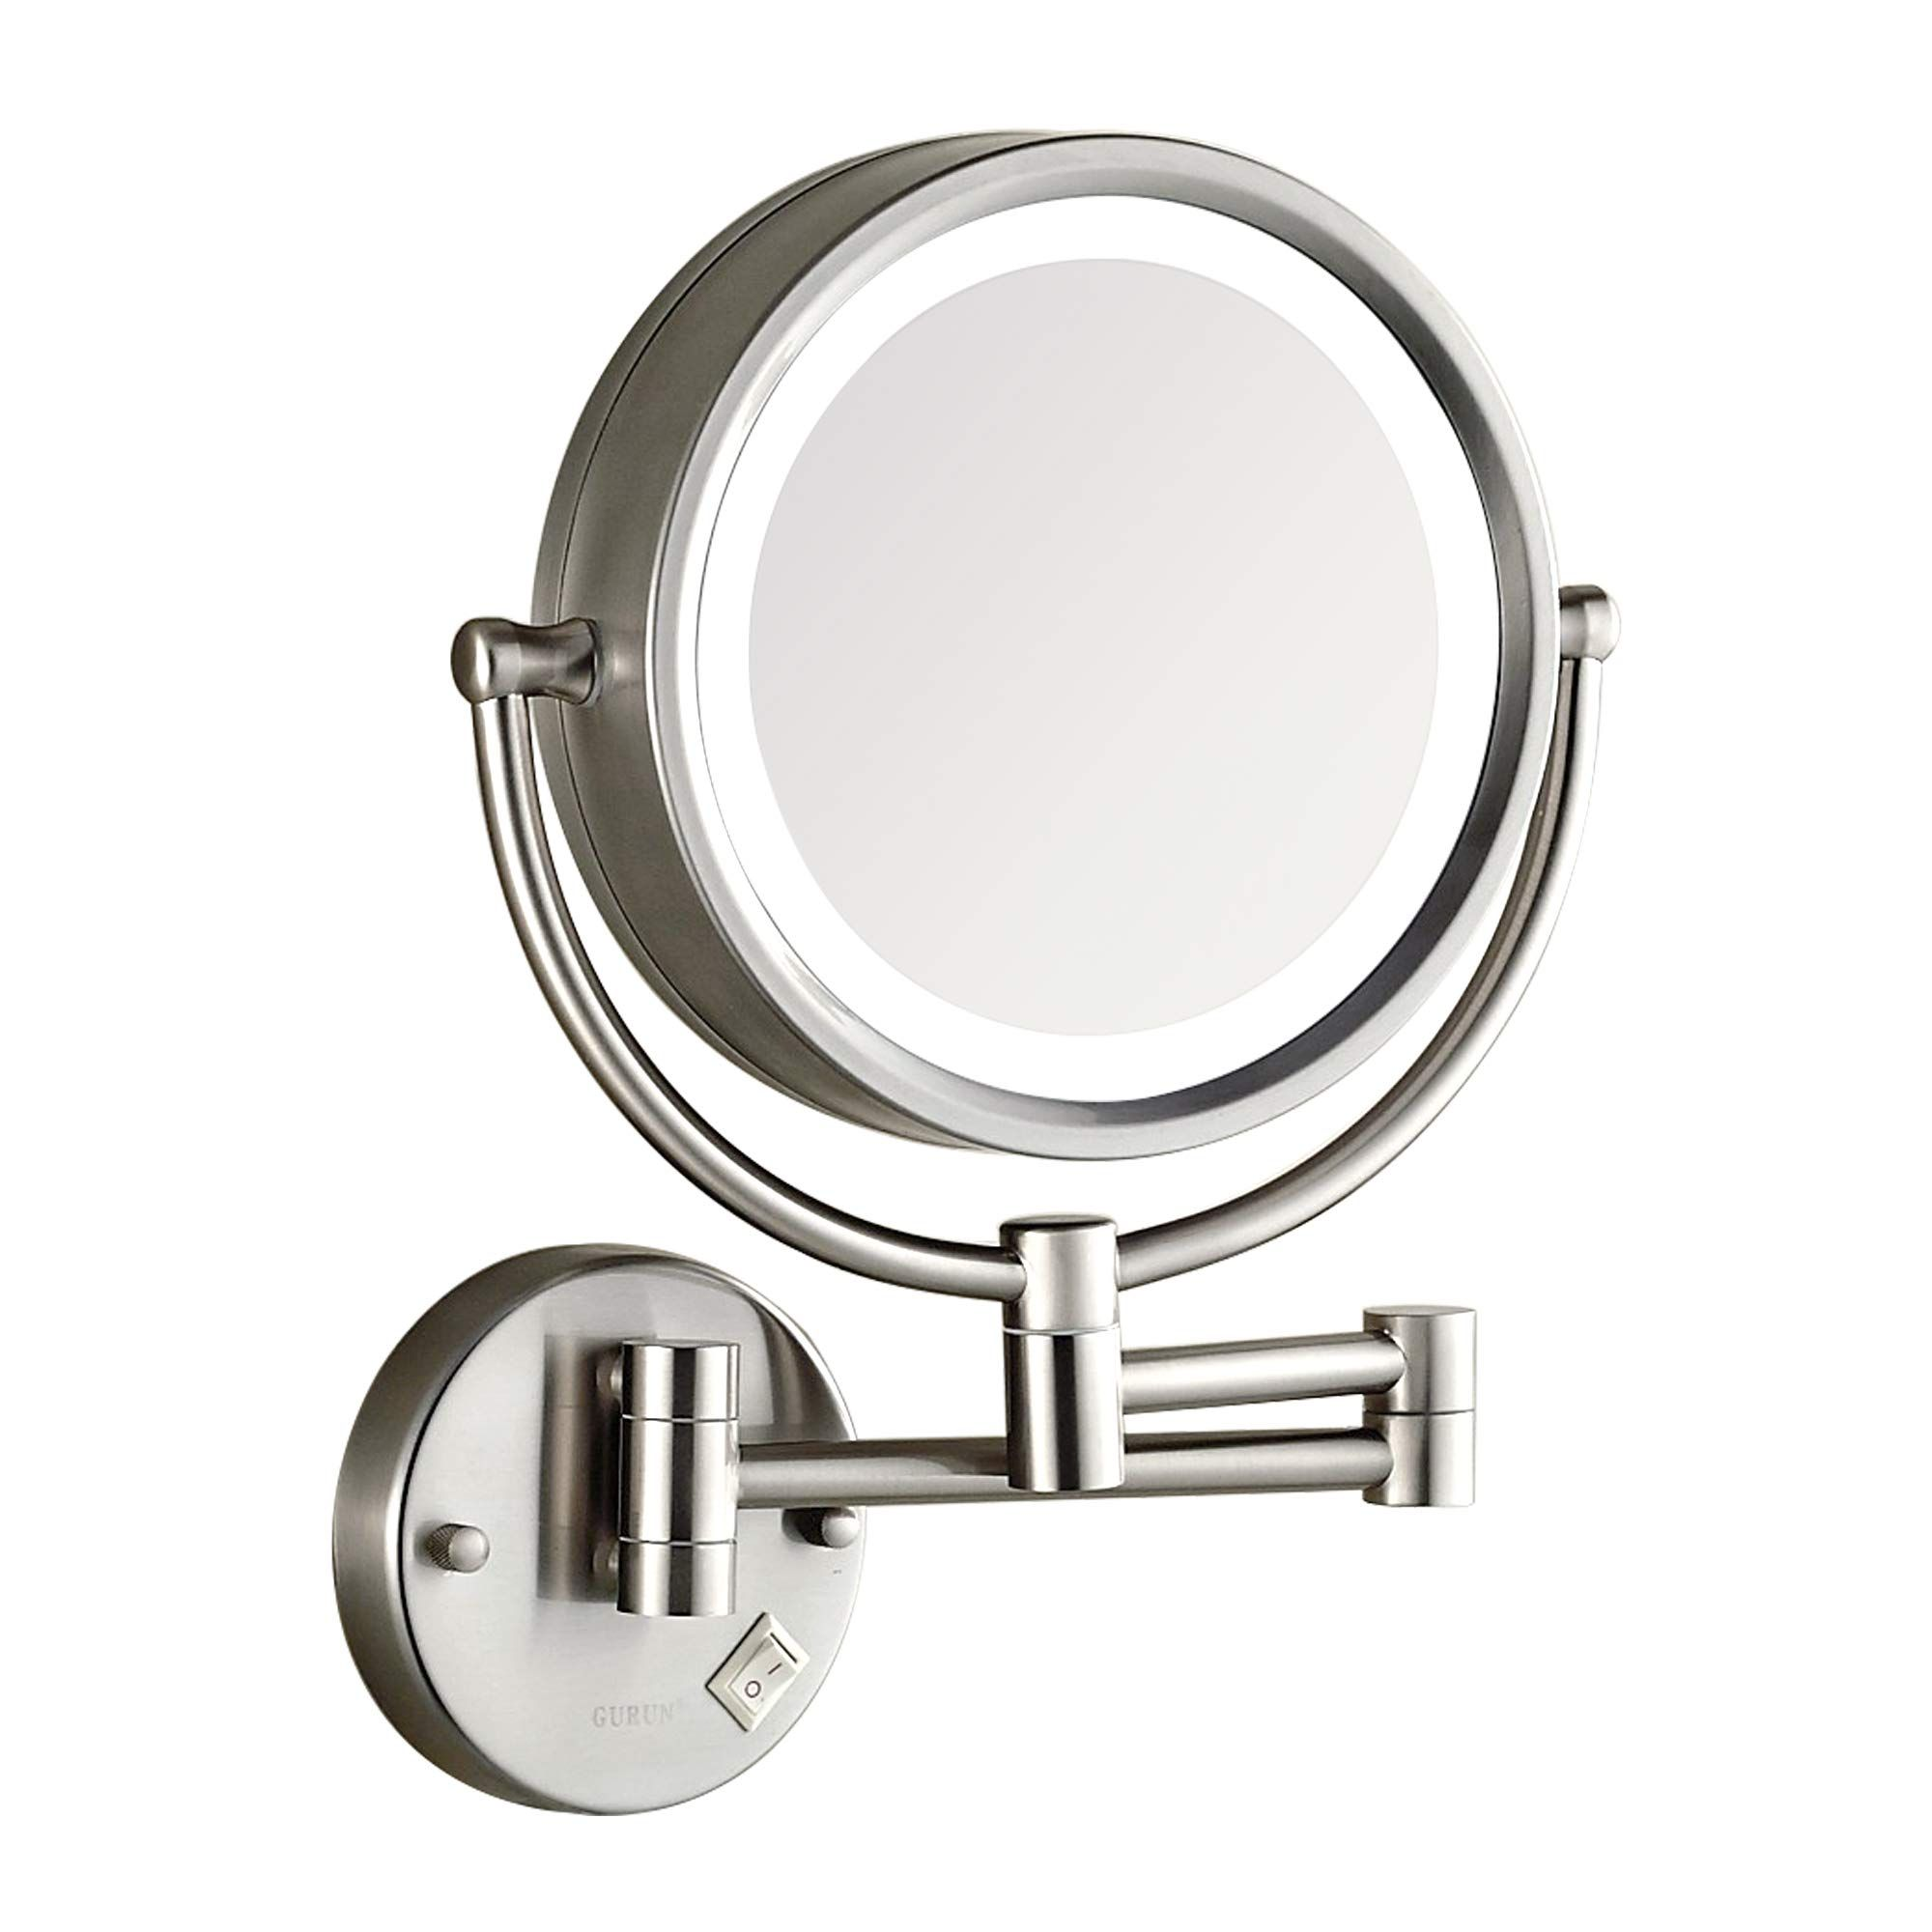 Dowry Makeup Mirror Wall Mount Lighted With 10x Magnification Direct Wire 8inch H Wall Mounted Light Brushed Nickel Bathroom Mirror Wall Mounted Makeup Mirror